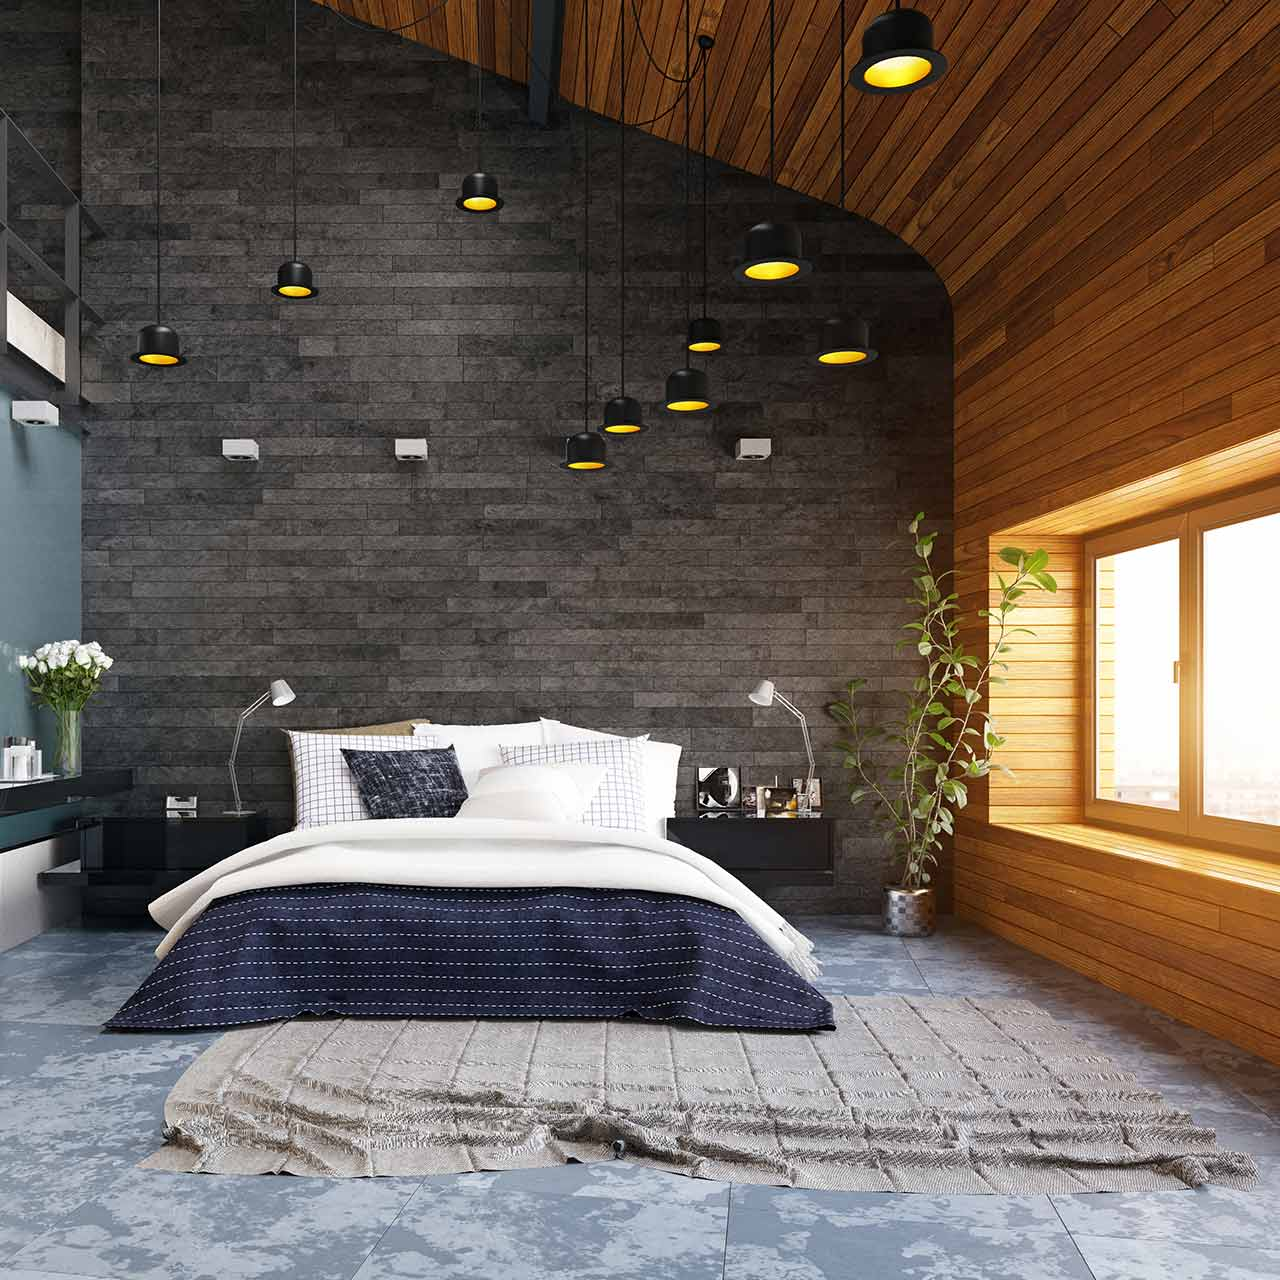 wooden ceiling frames concrete walls for industrial style bedroom design